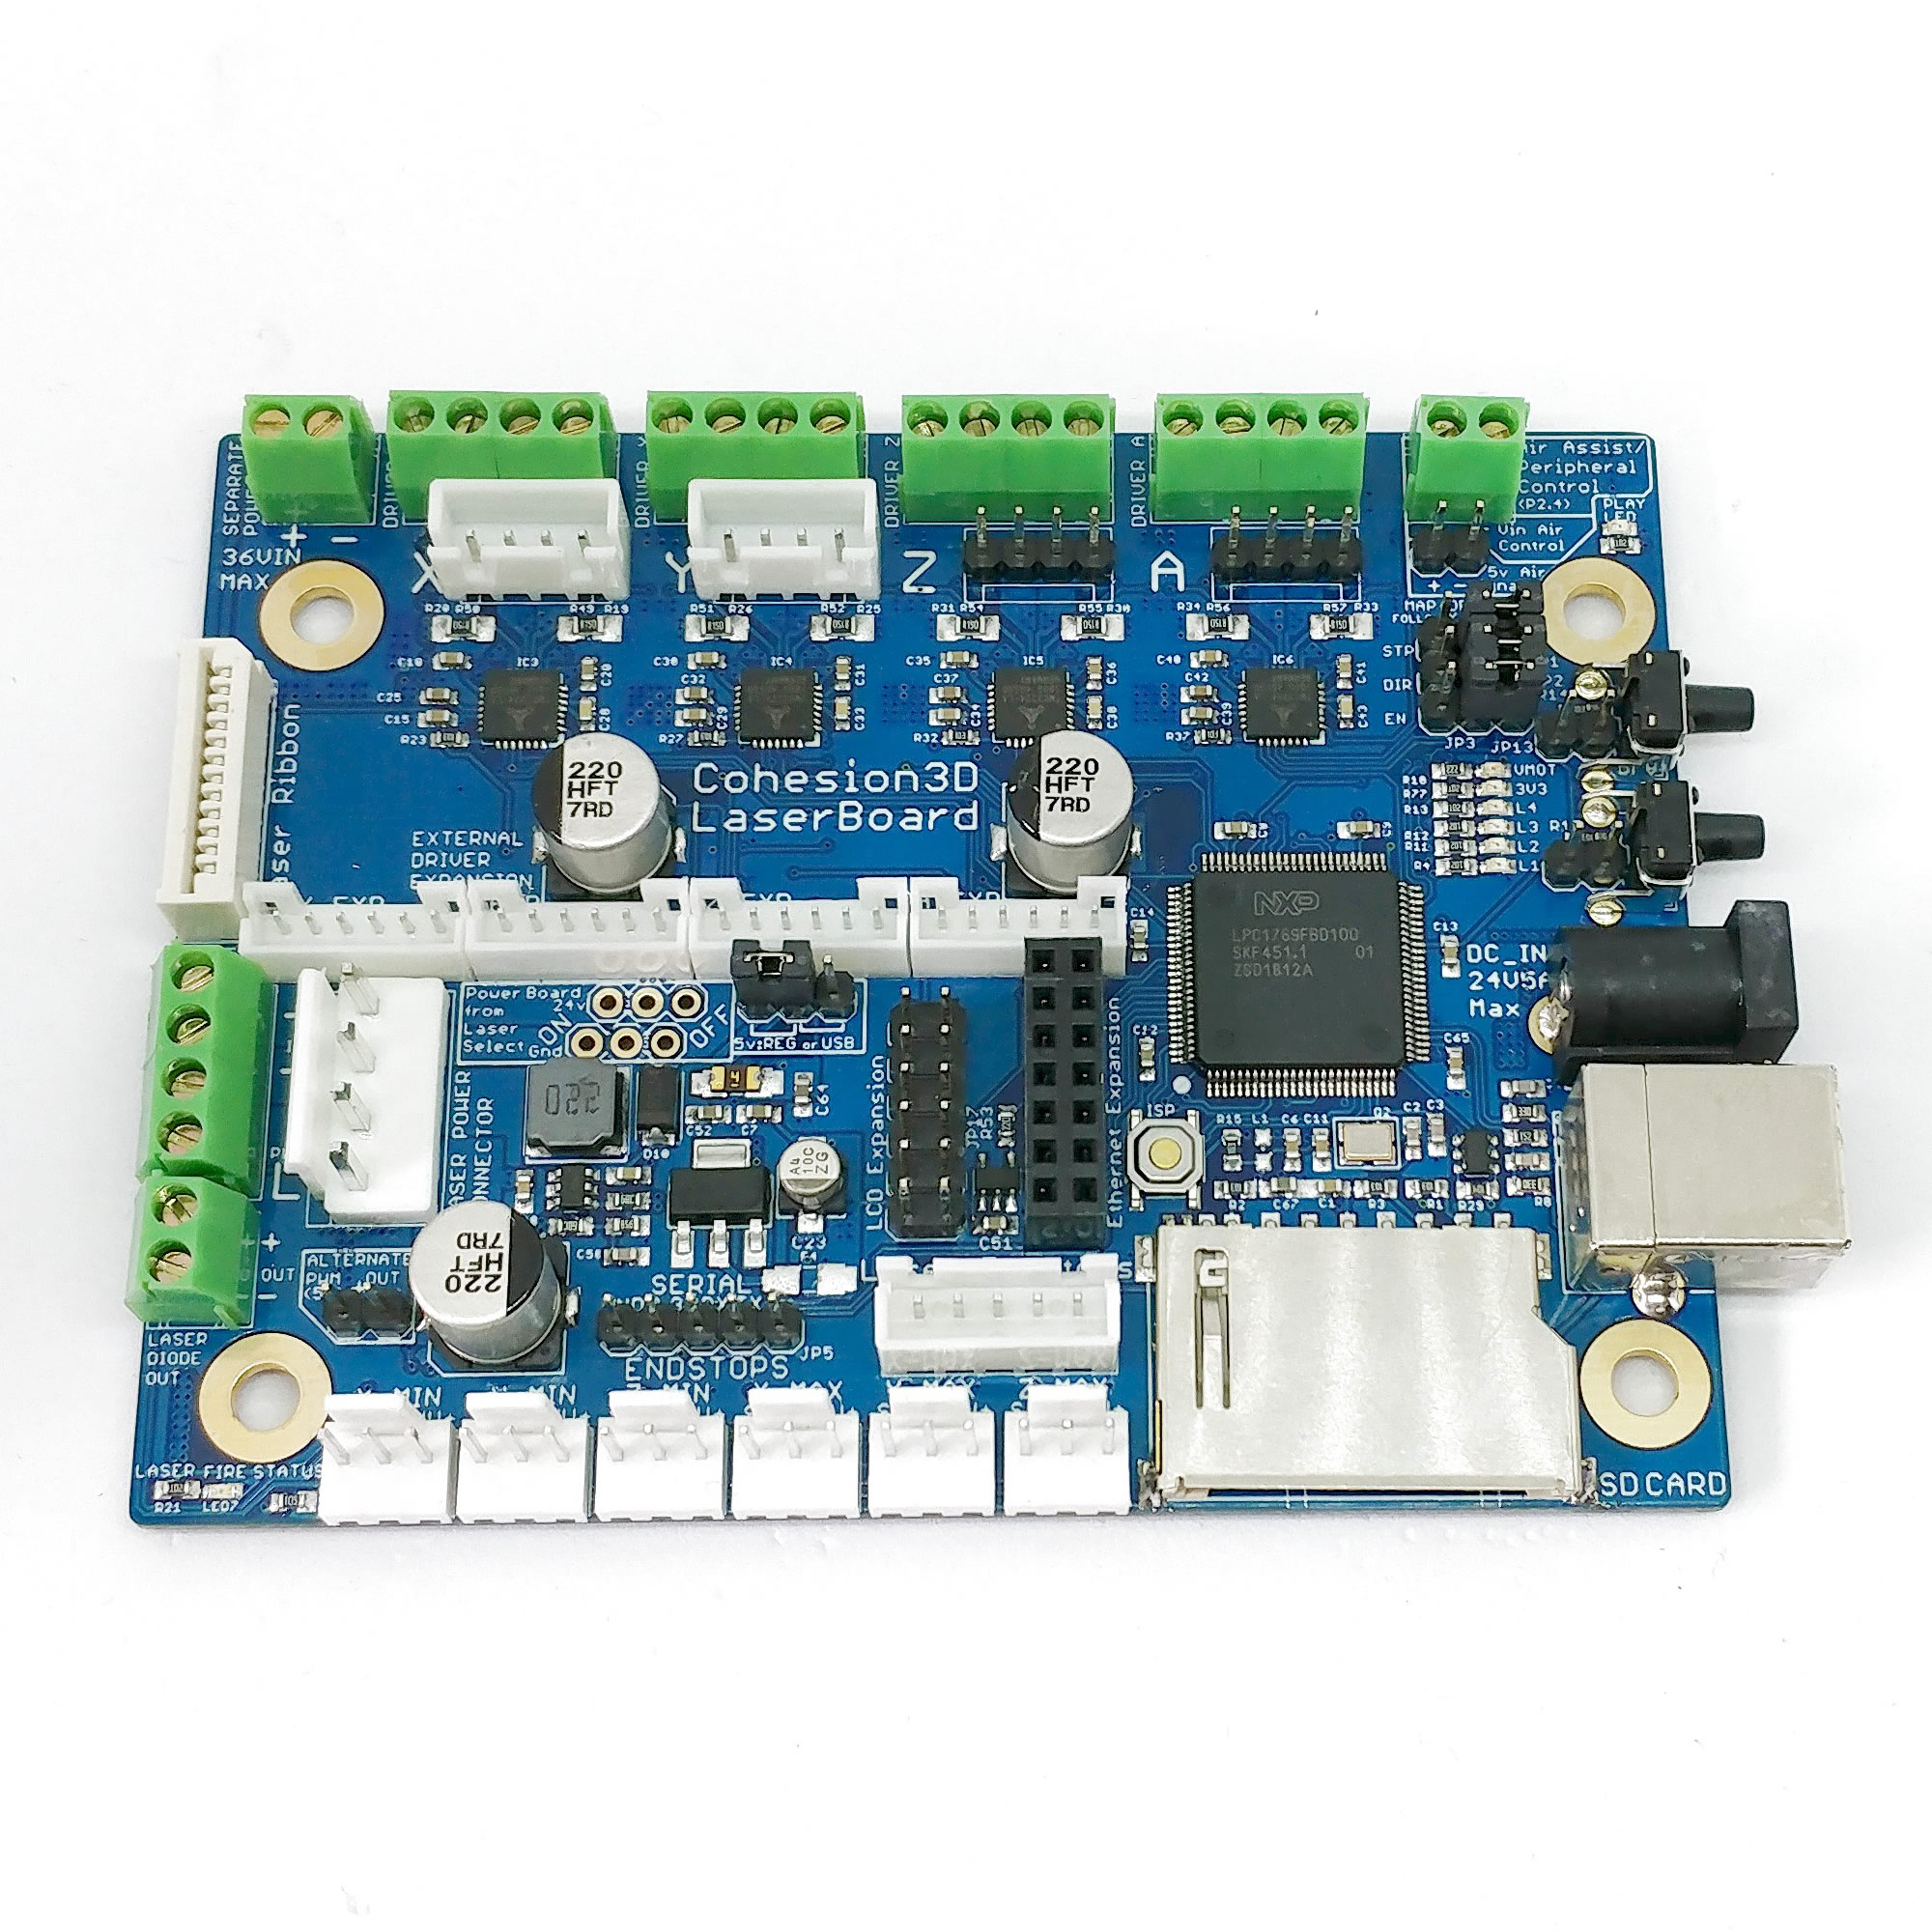 Cohesion3D LaserBoard